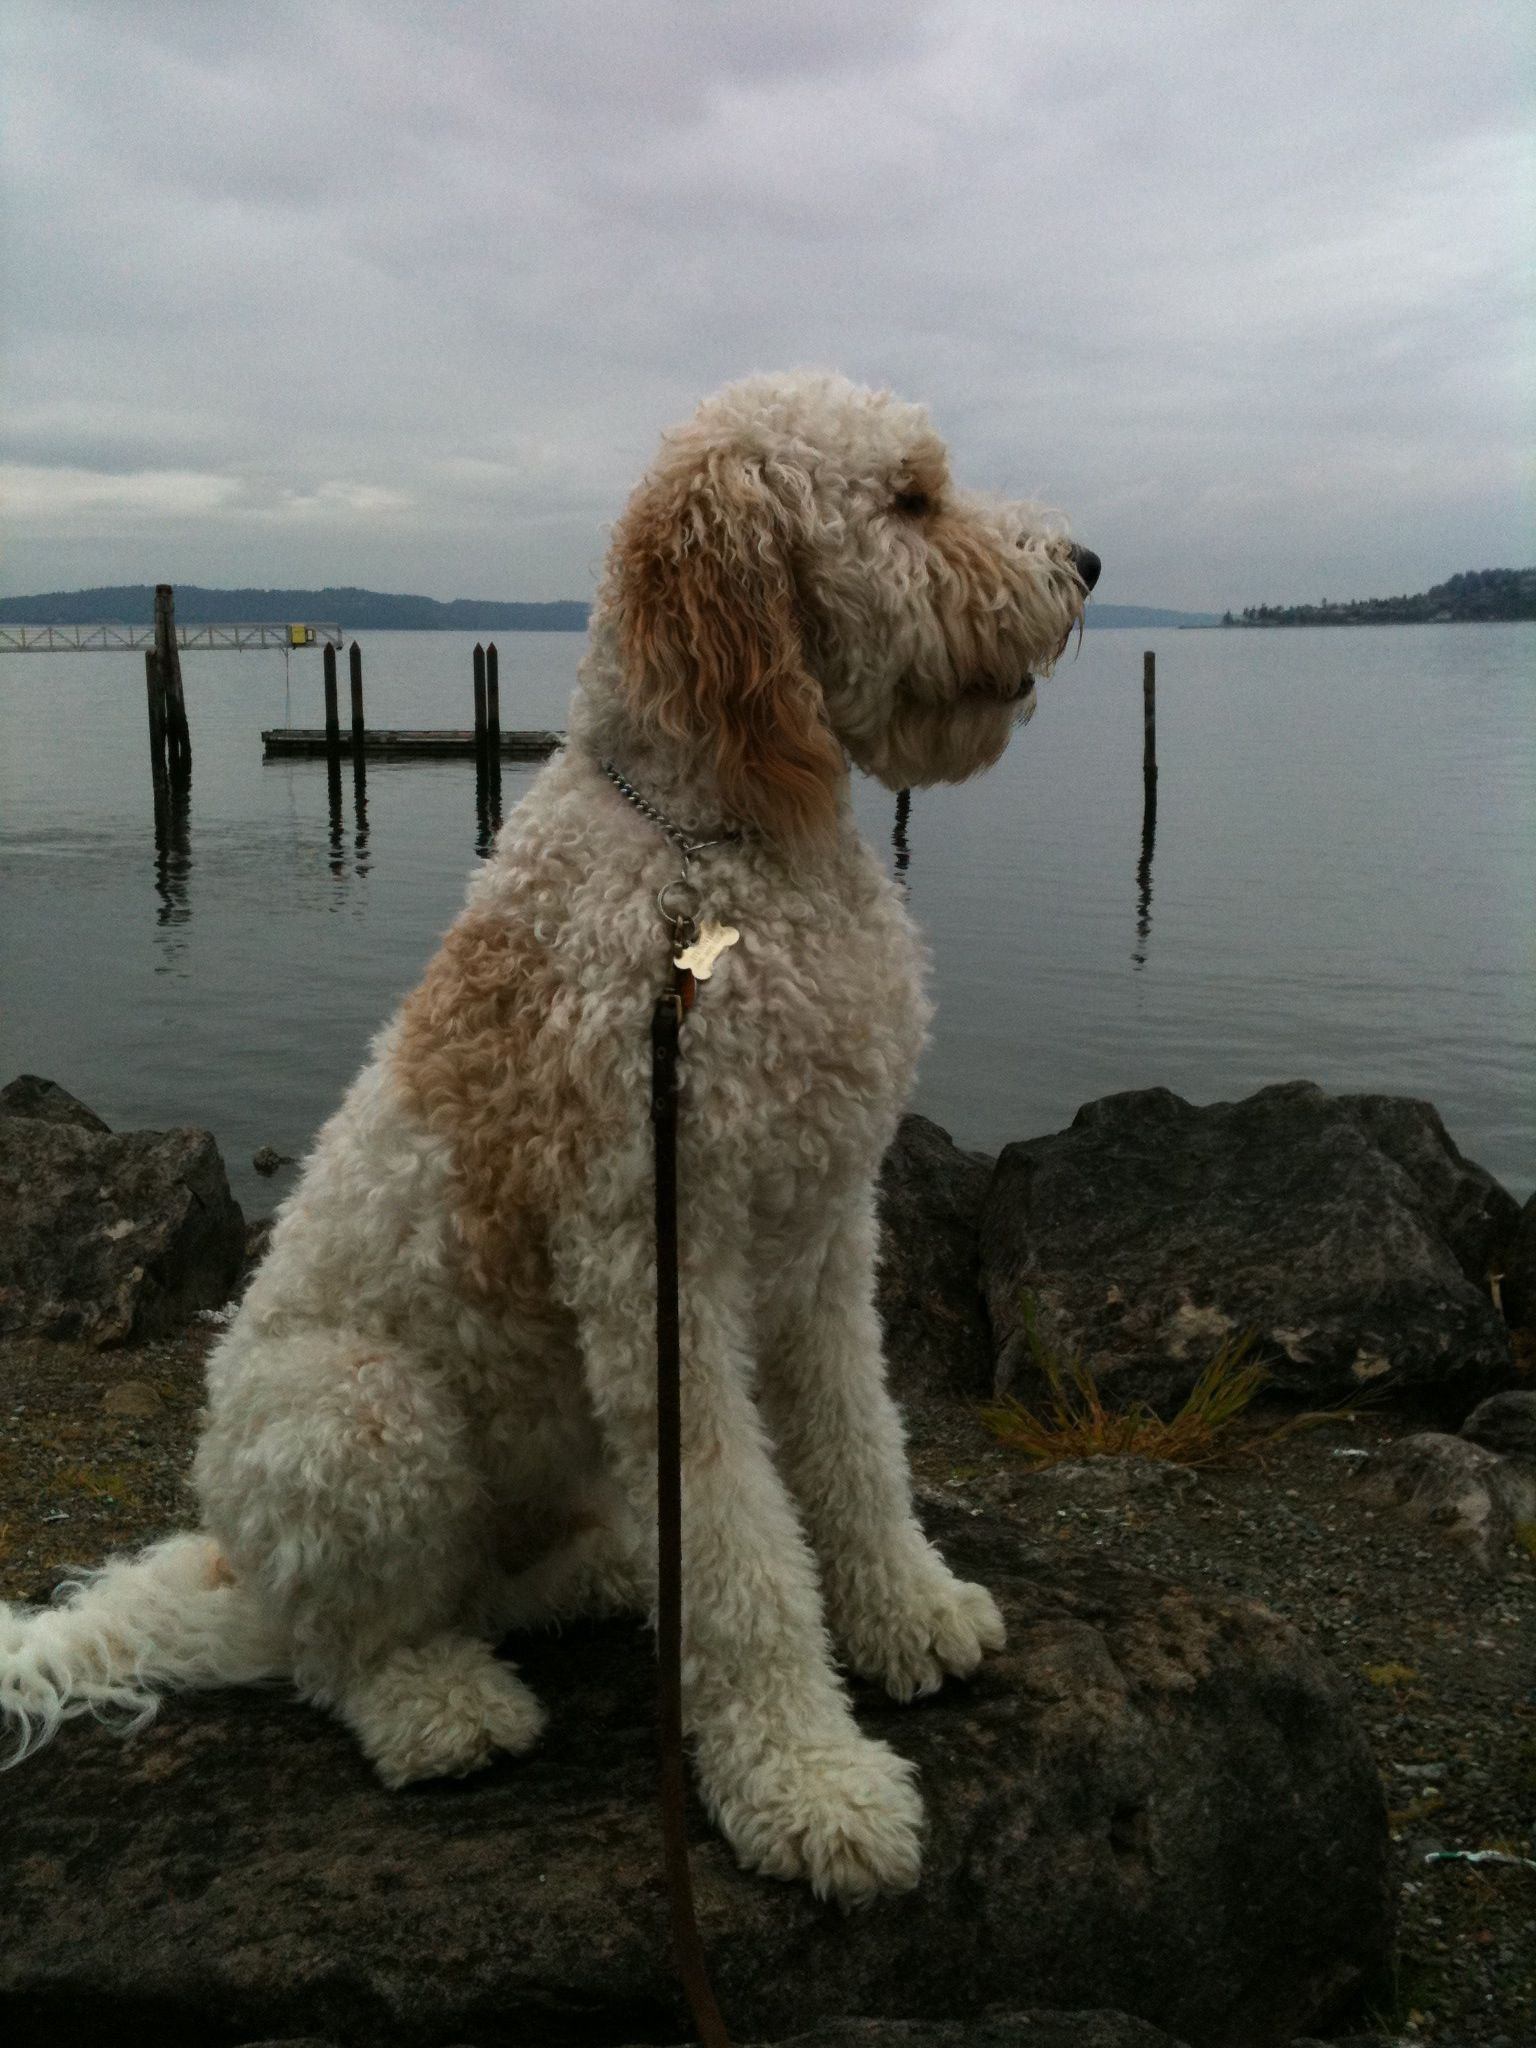 Labradoodle. A lab mixed with a poodle makes for a large